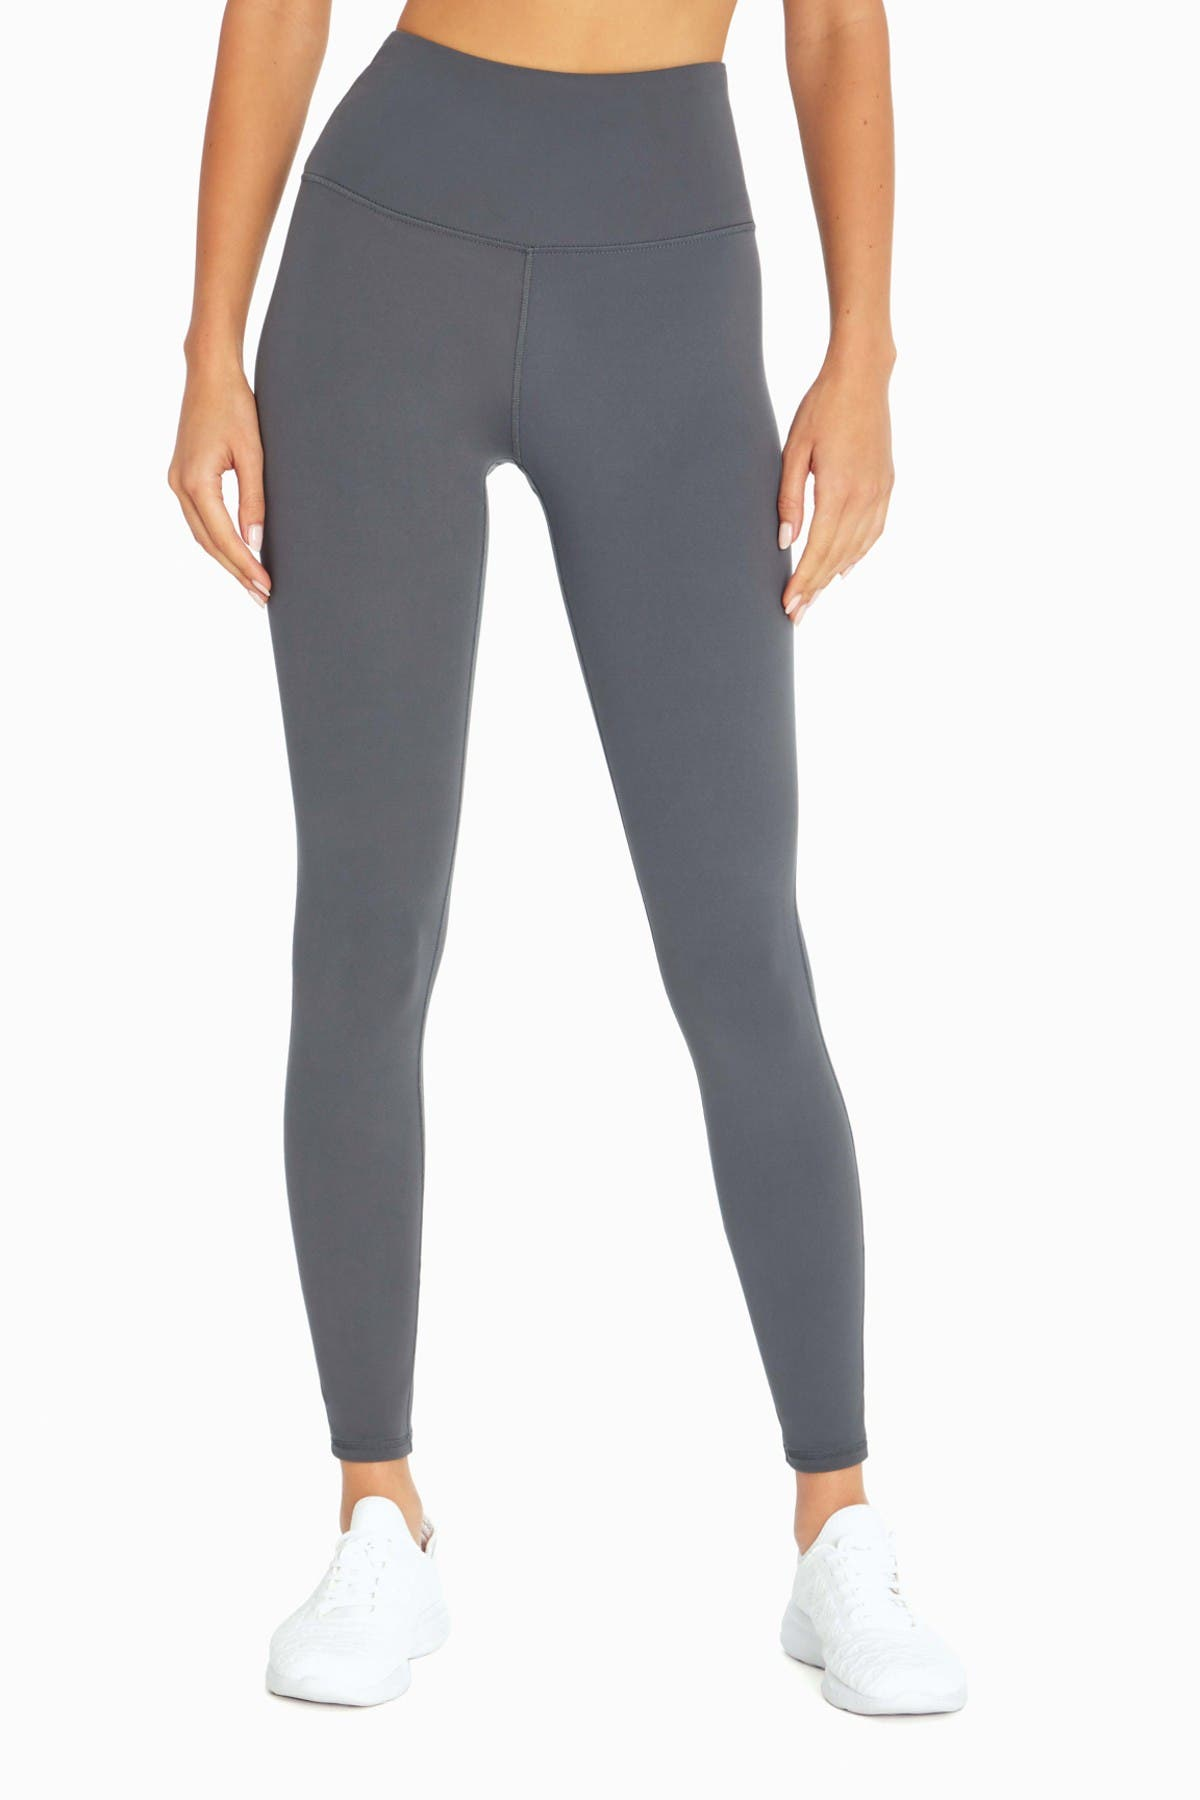 Image of Marika Shiloh High Waist Leggings